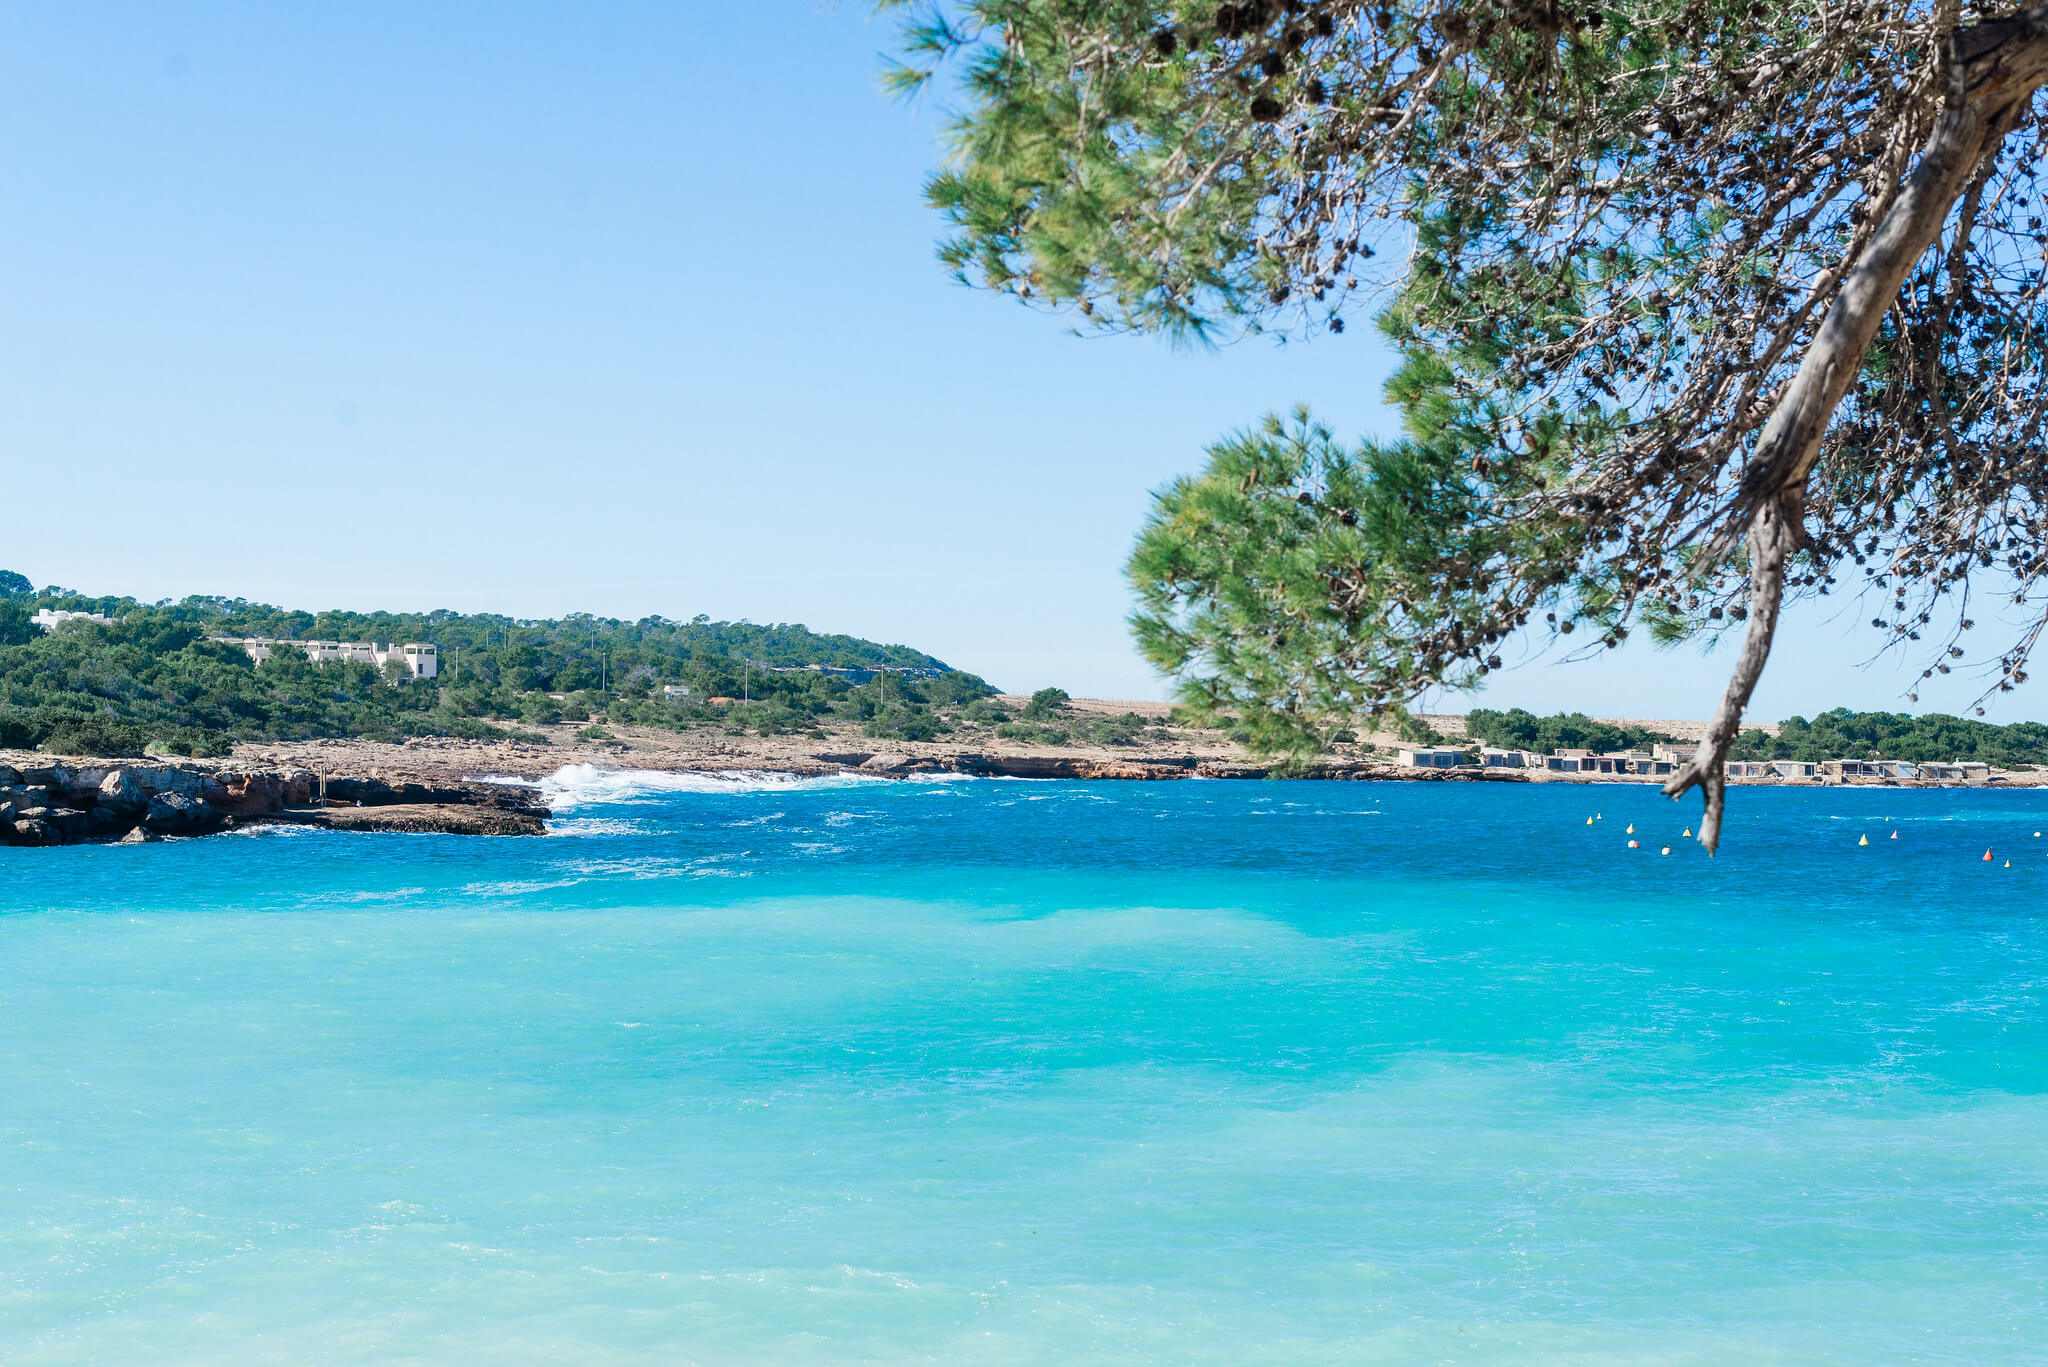 https://www.white-ibiza.com/wp-content/uploads/2020/03/ibiza-beaches-port-des-torrent-04.jpg